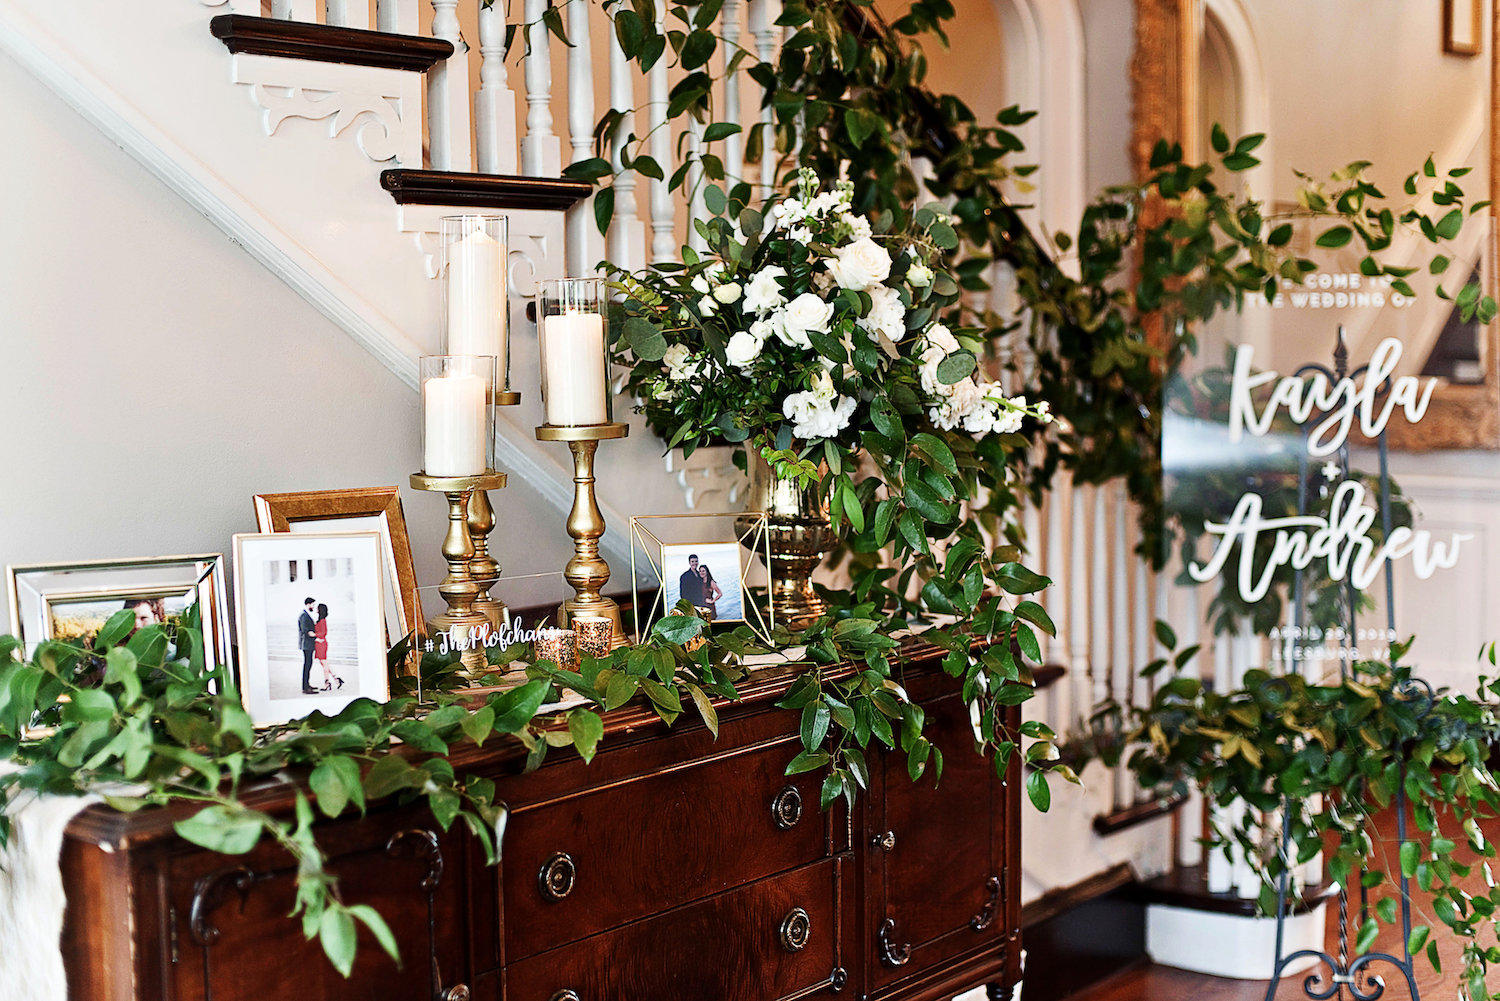 The entryway table, stairwell and welcome sign with greens and floral included personal framed photos.